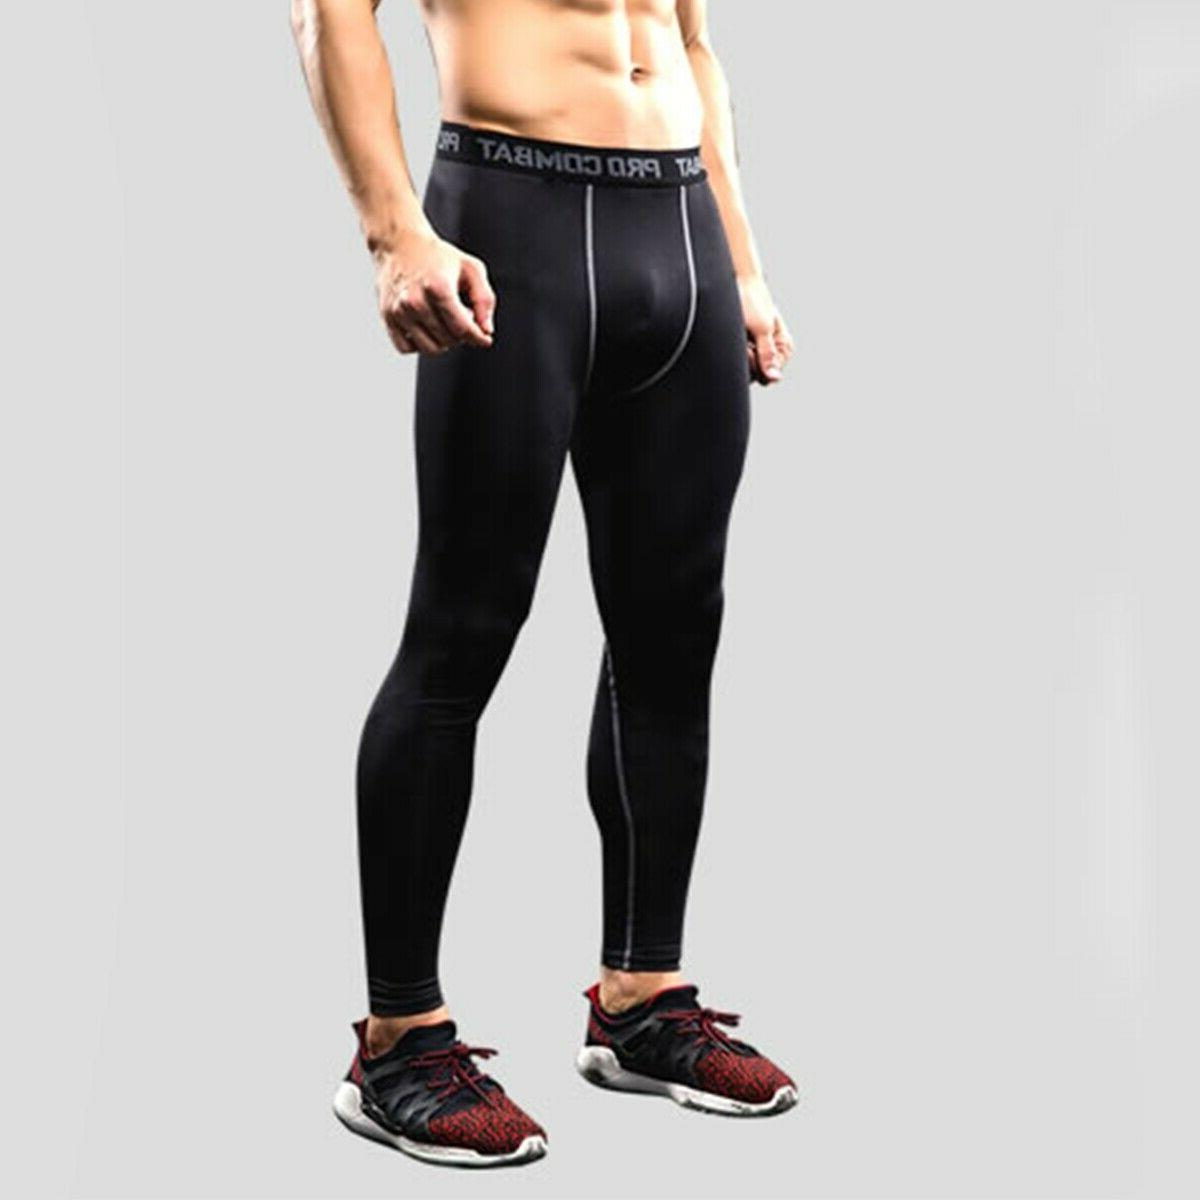 Men's Compression Dry Cool Sports Baselayer Running Leggings Yoga